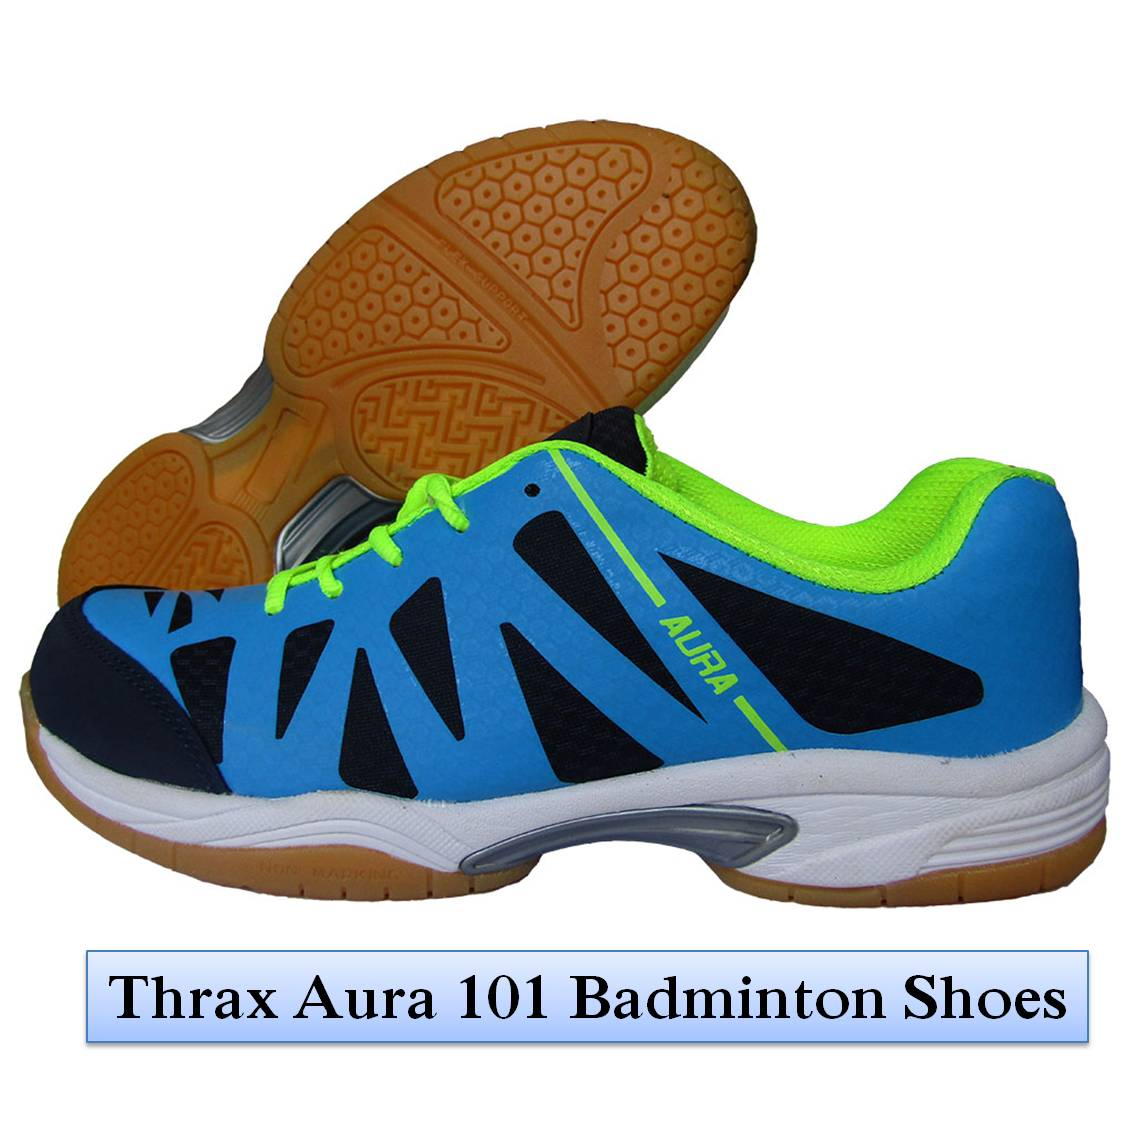 Thrax_Aura_101_Badminton_Shoes_Blog_Image